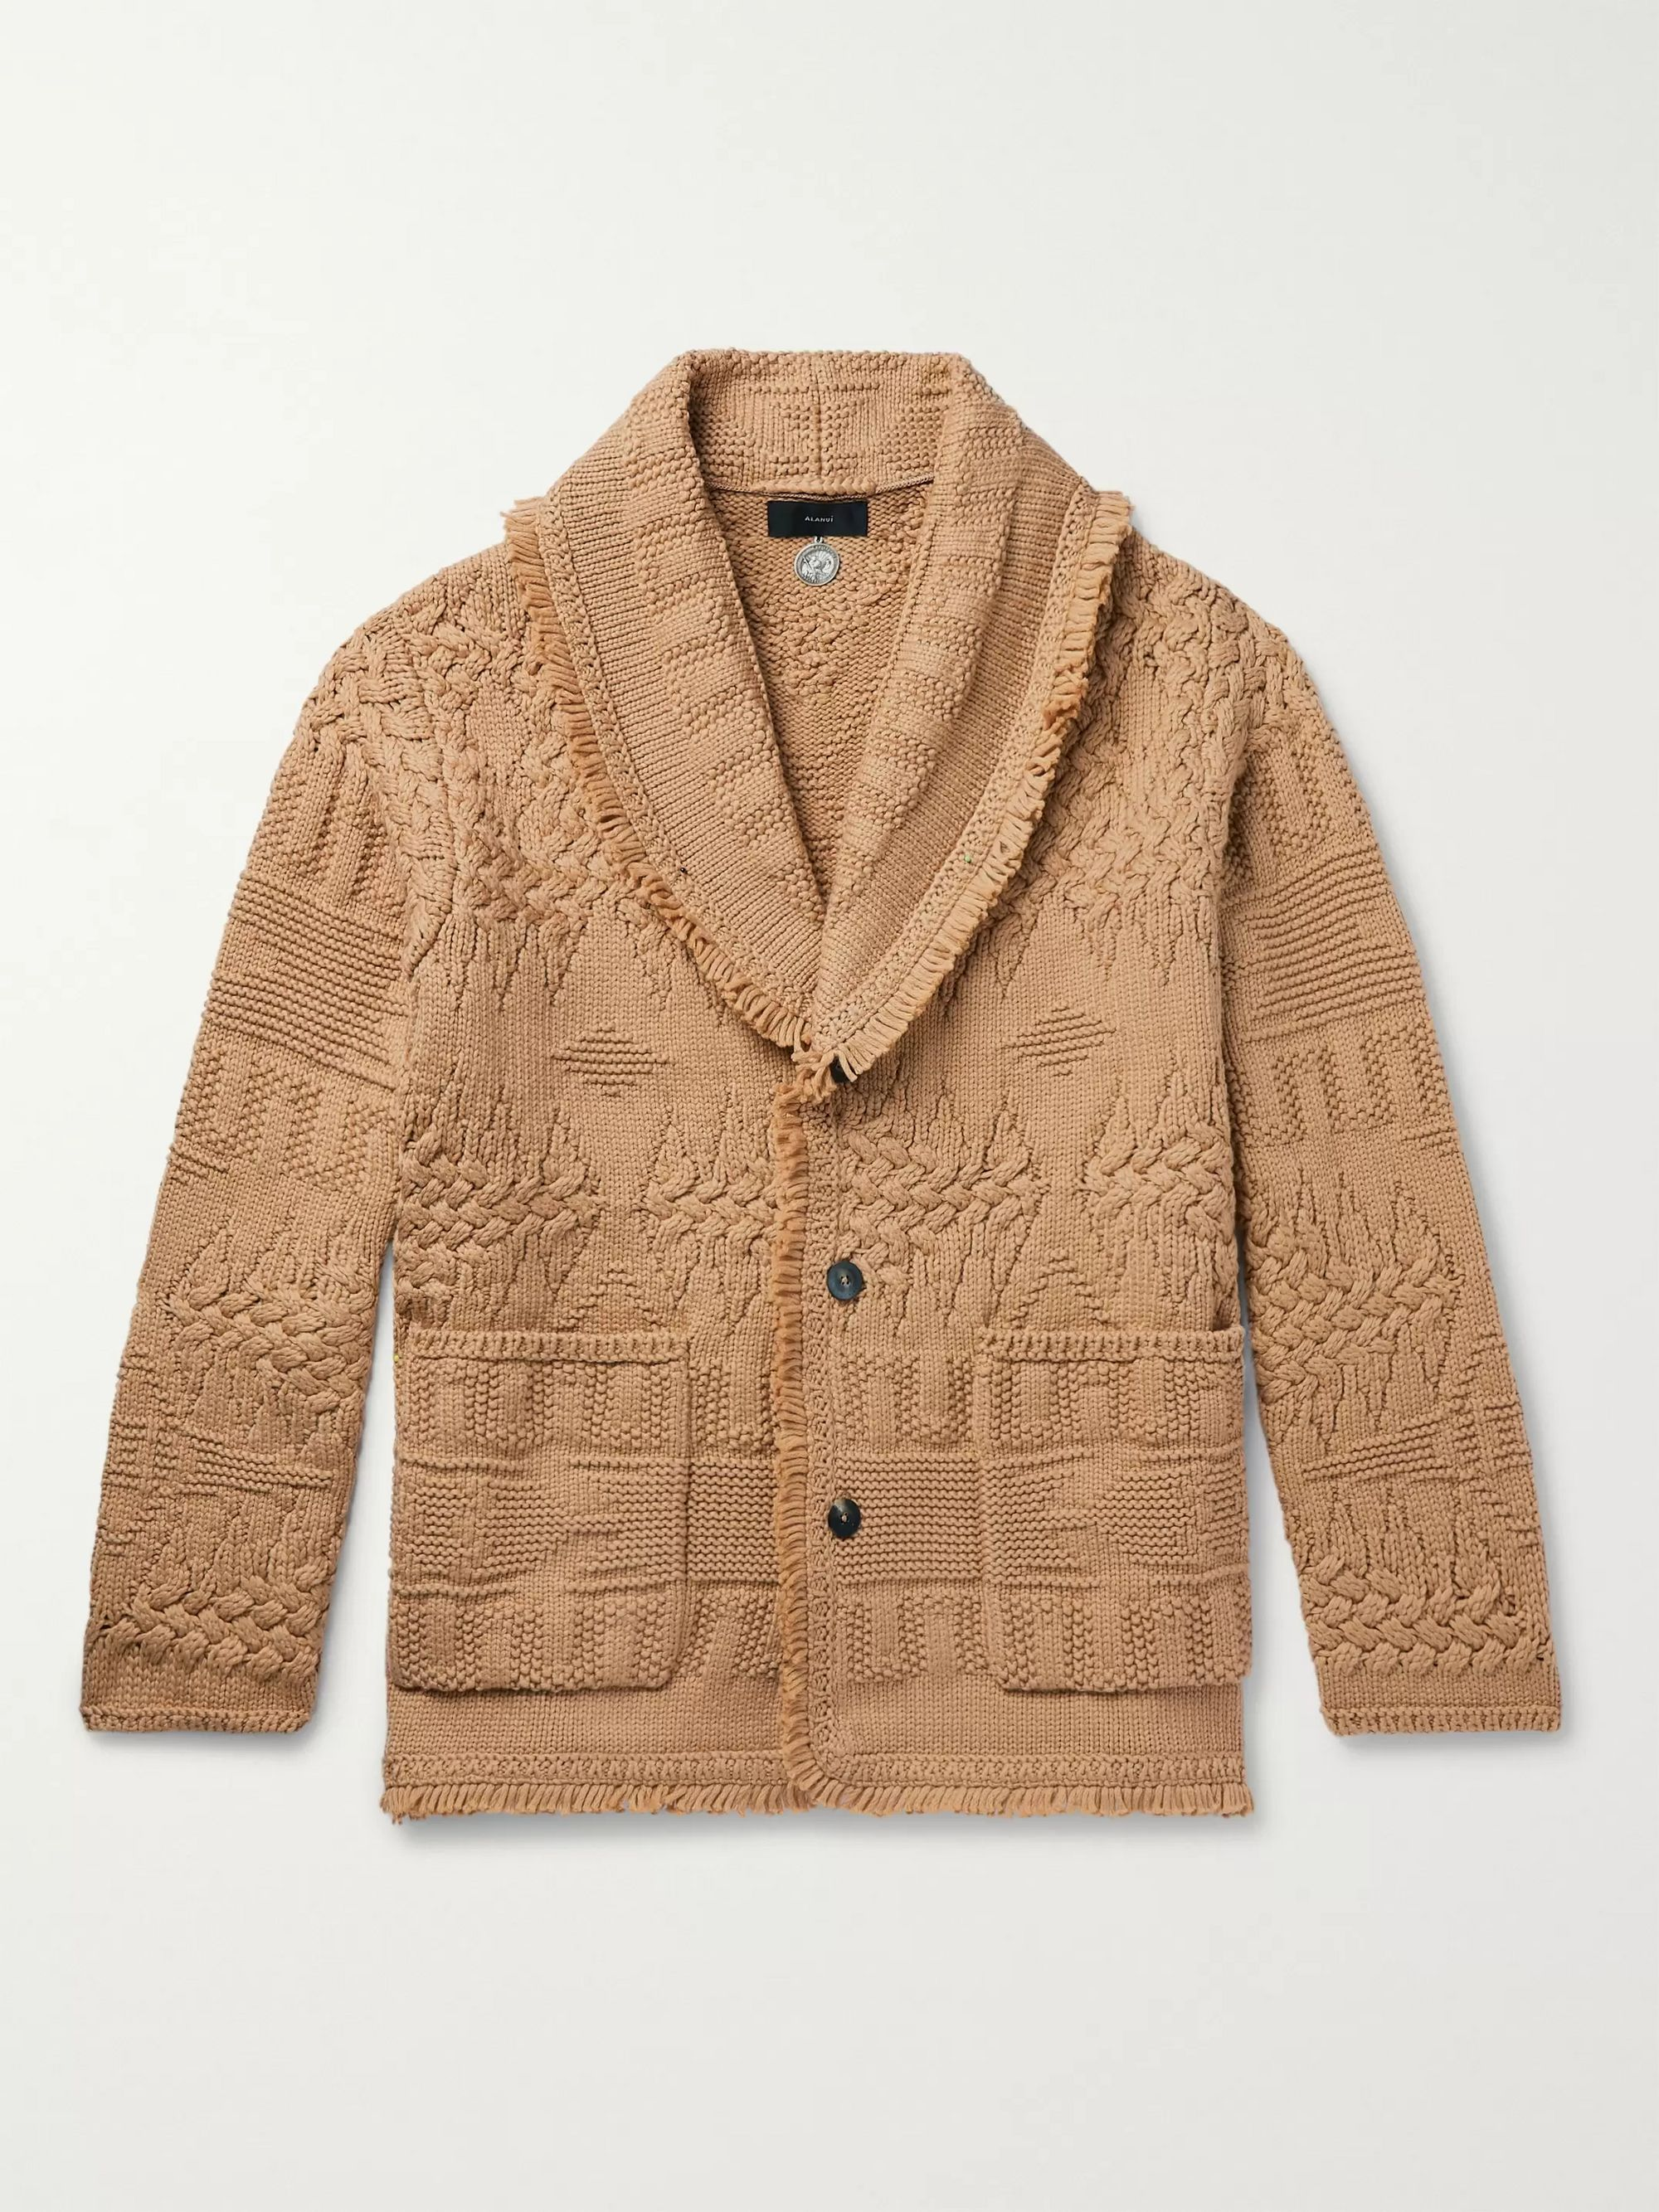 Alanui Fringed Cotton-Blend Cardigan